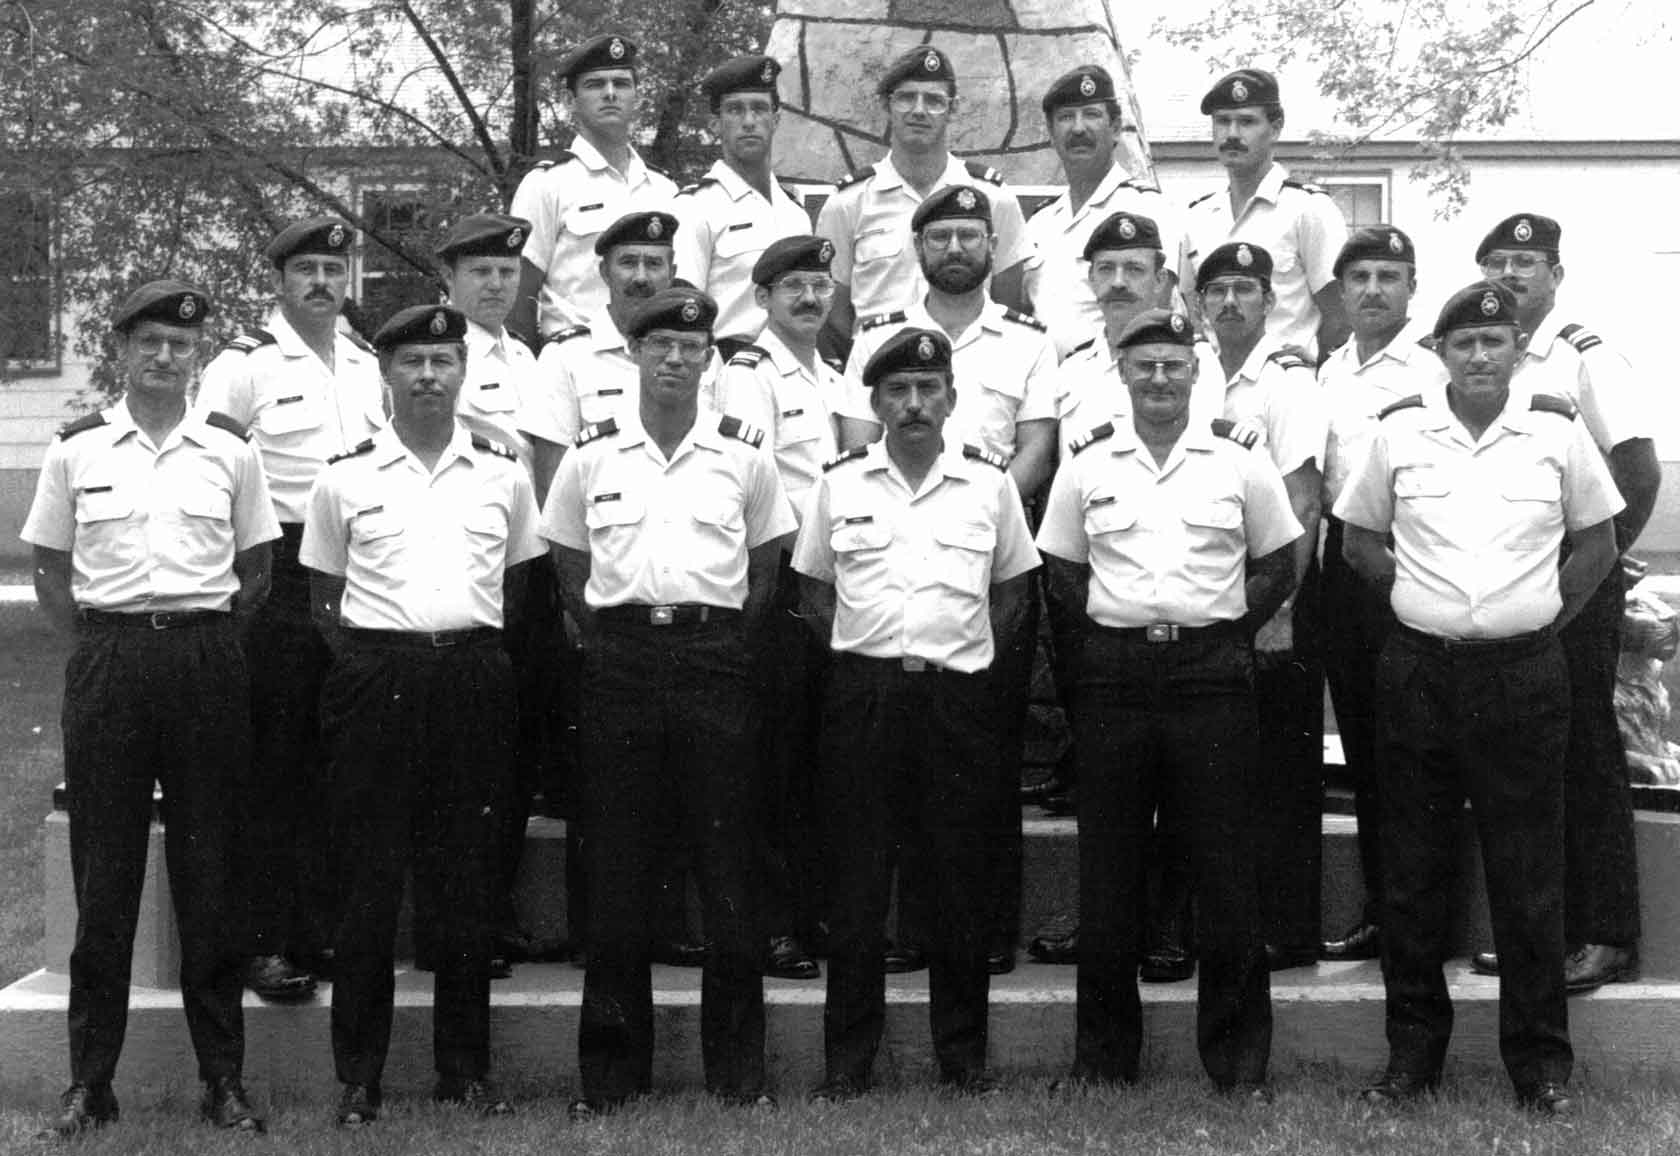 Hal after completion of the Basic Intelligence Officer 82A, Course 8301 at CFSIS on 23 Nov 1983